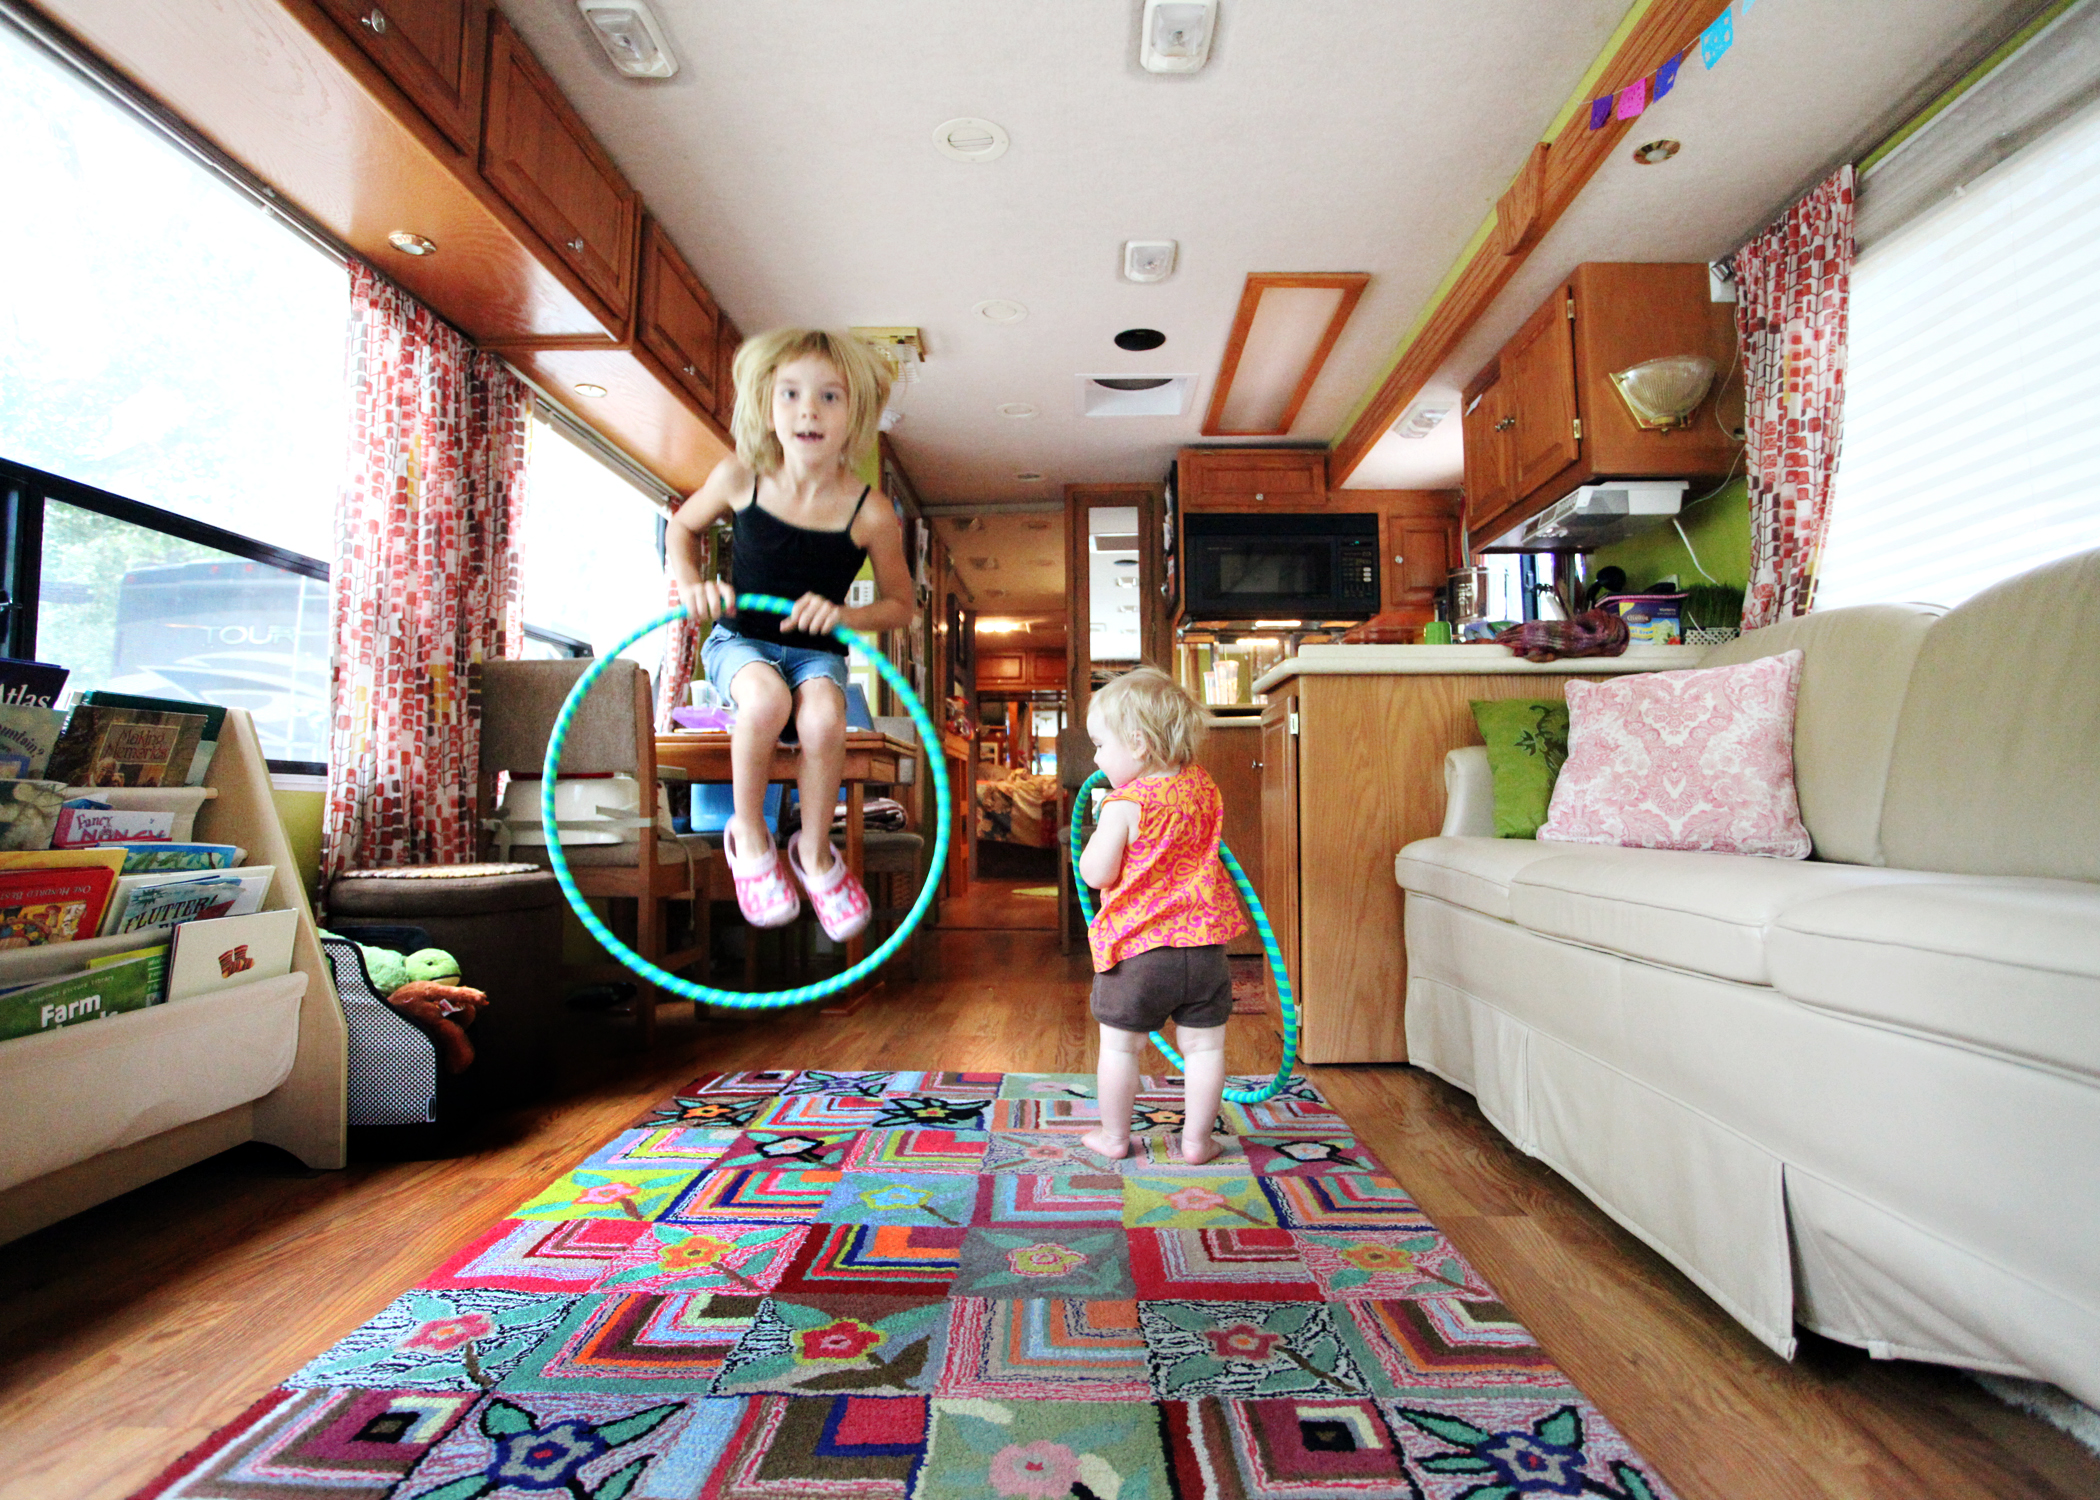 1000 images about Rv Decorating Ideas on Pinterest  DIY and crafts Fifth Wheel Campers and